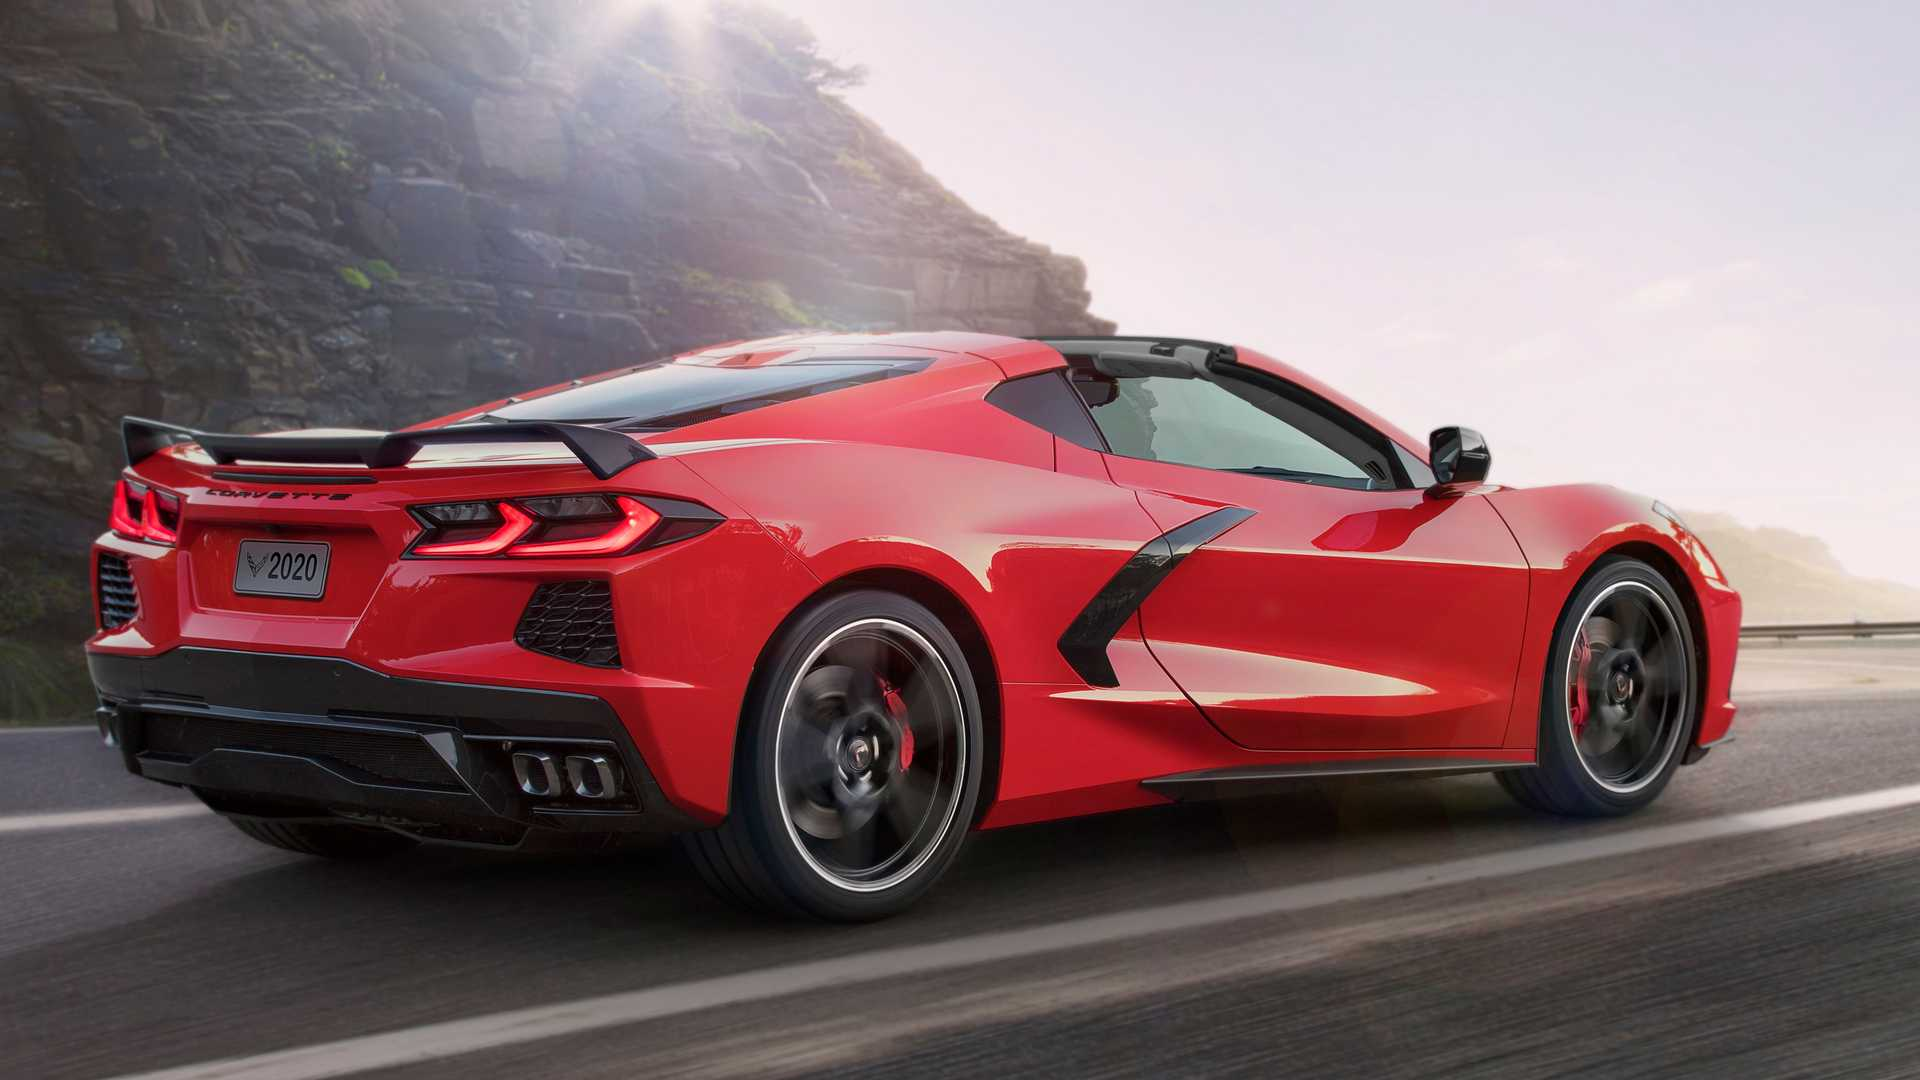 2020-chevrolet-corvette-stingray-3